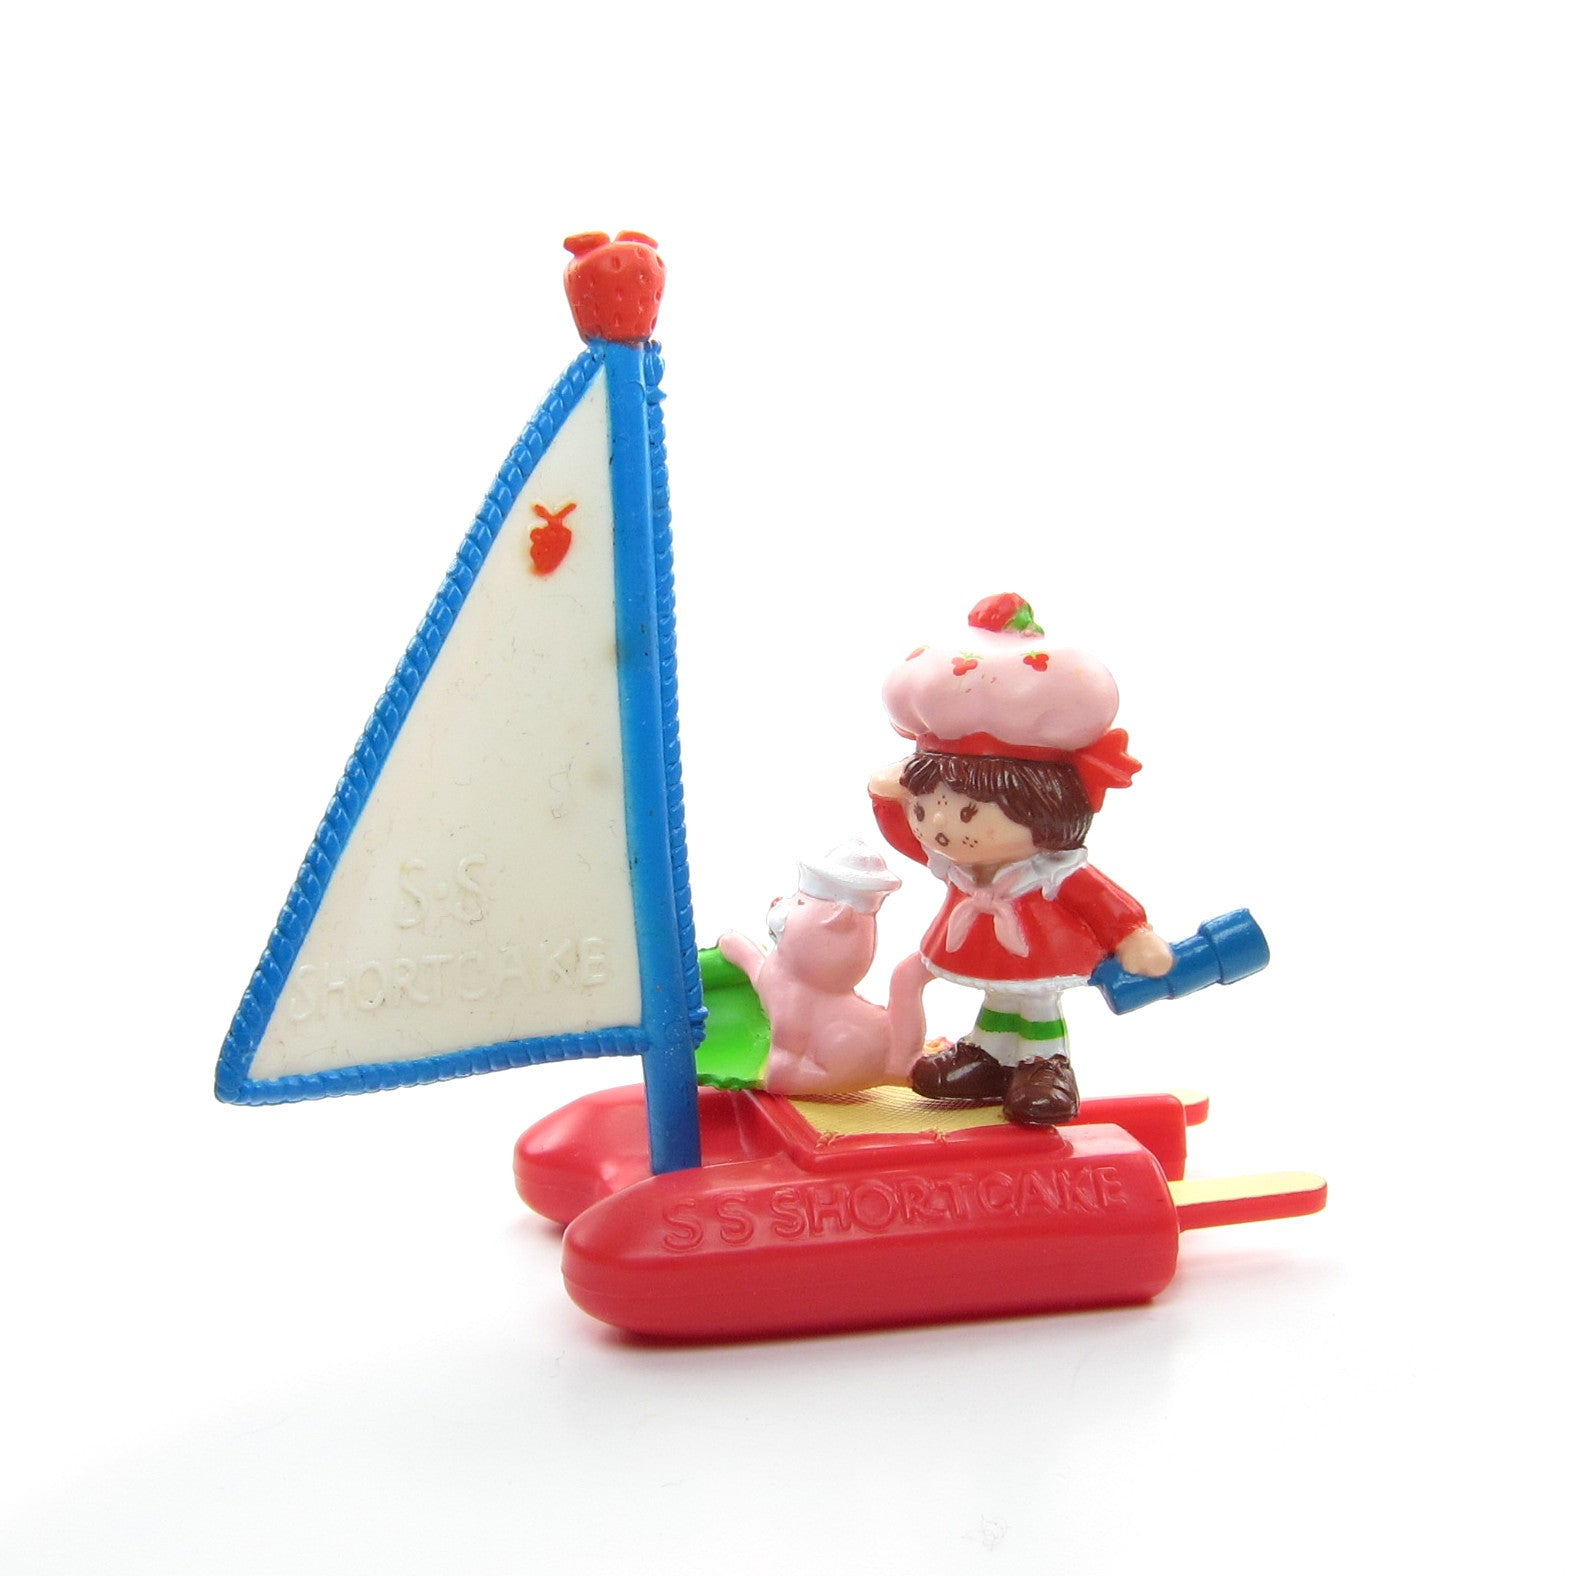 Strawberry Shortcake with Custard on a Sailboat figurine set